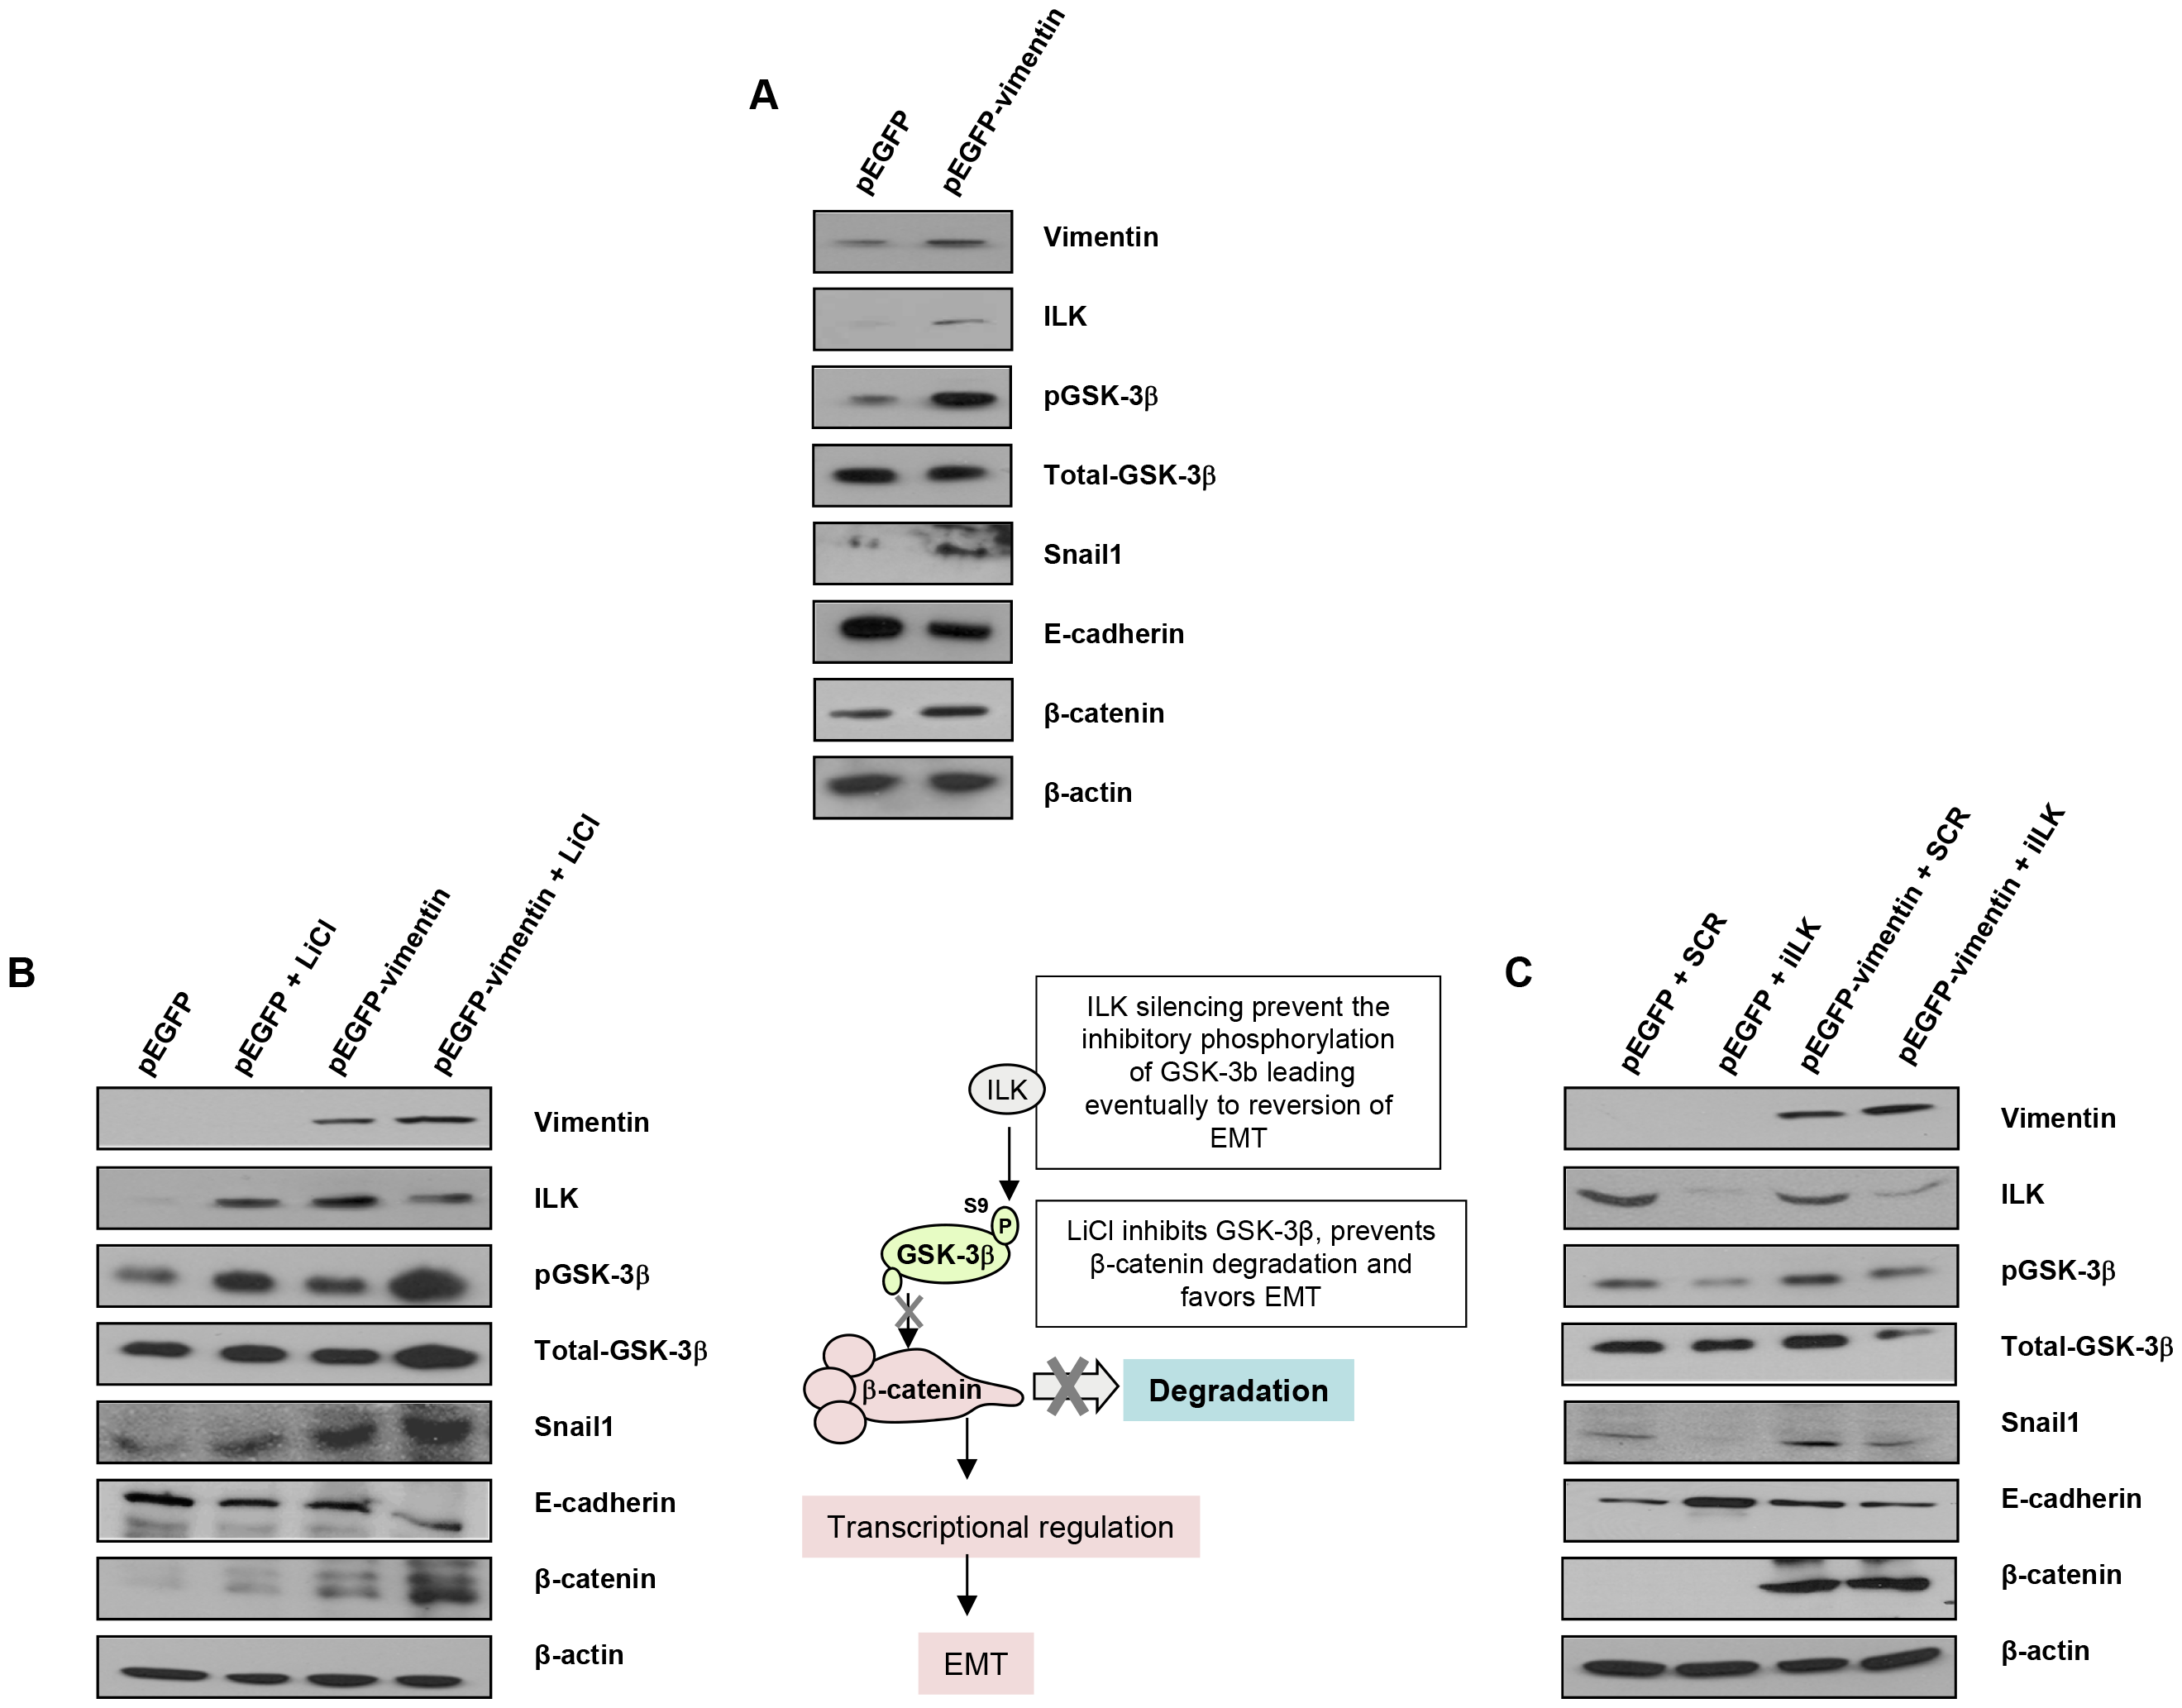 Interaction between vimentin over-expression and the activation of EMT signaling pathway.